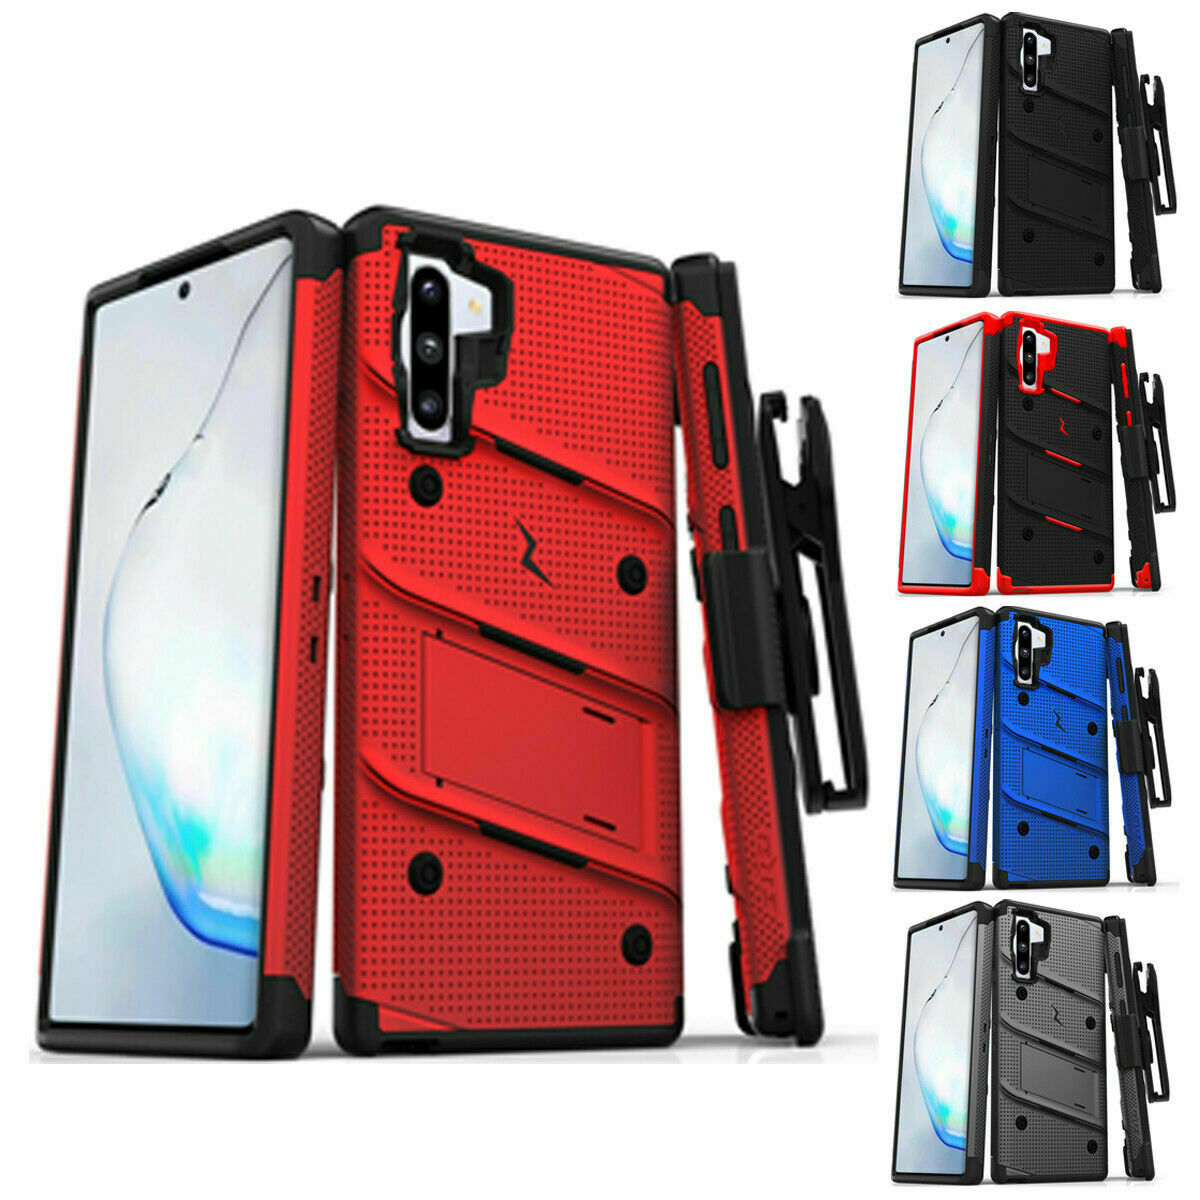 Samsung Galaxy NOTE 10 Case ZIZO BOLT with rotatable holster